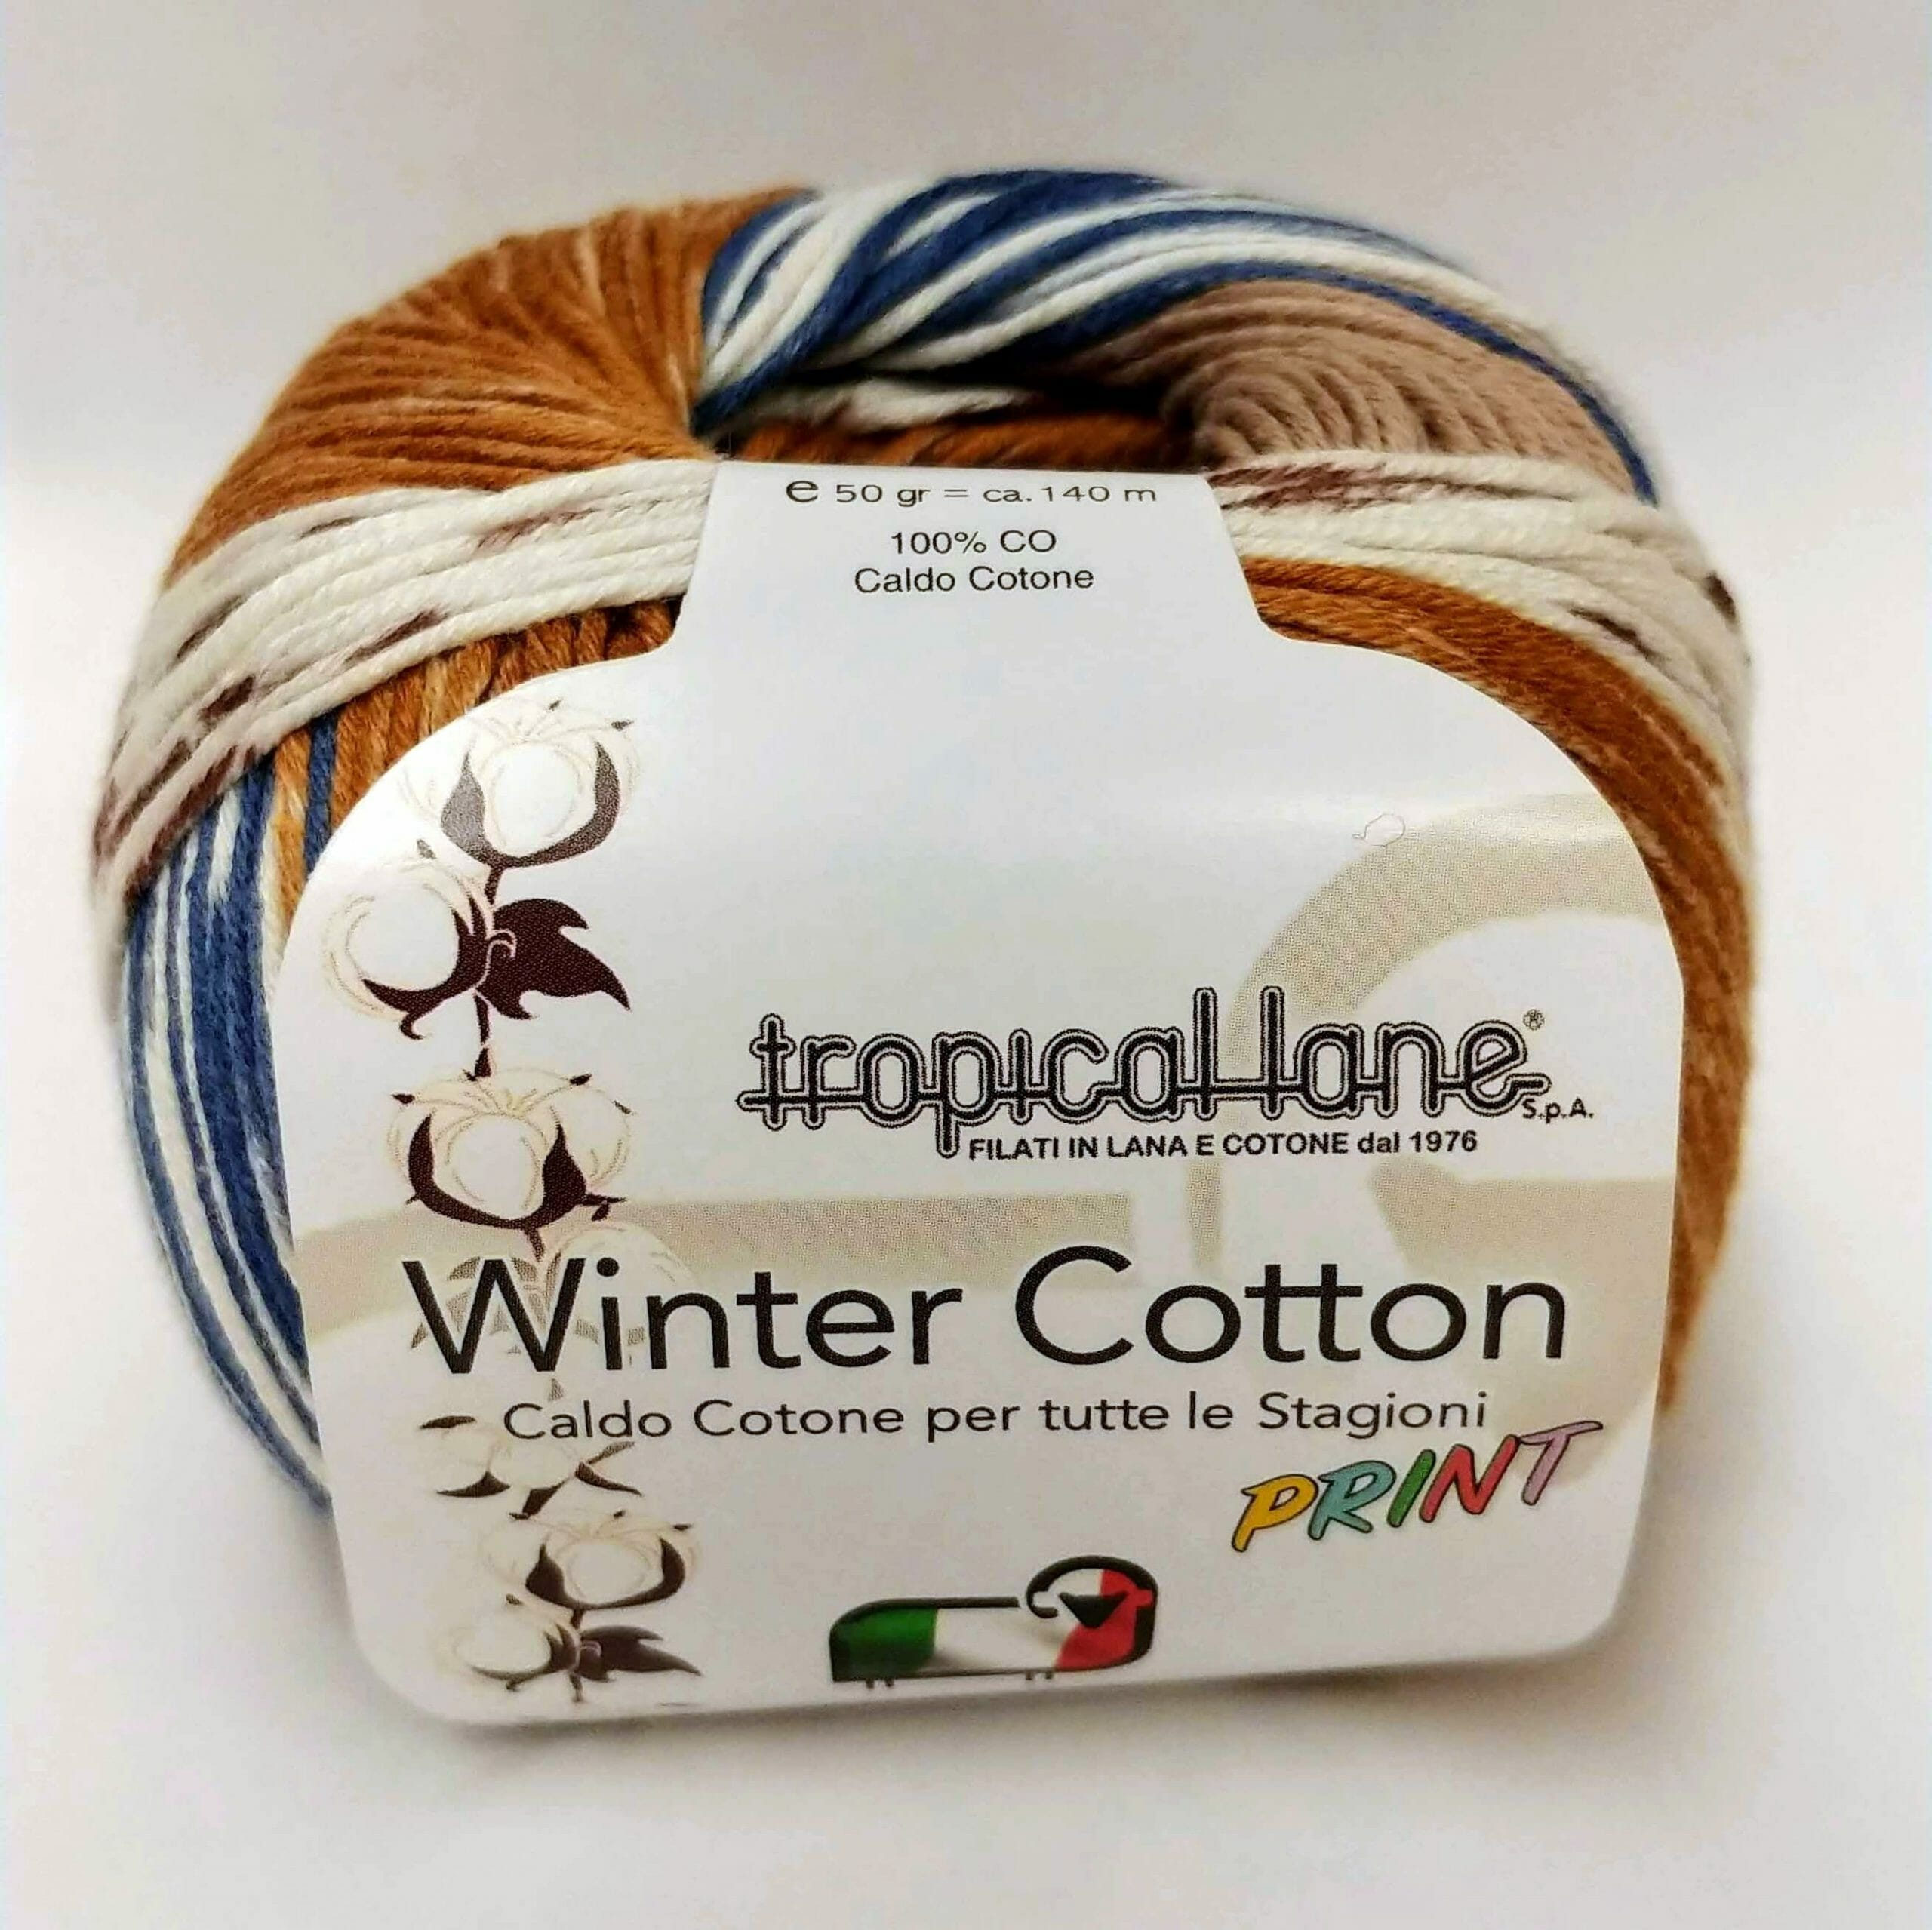 Tropical Lane - Winter cotton